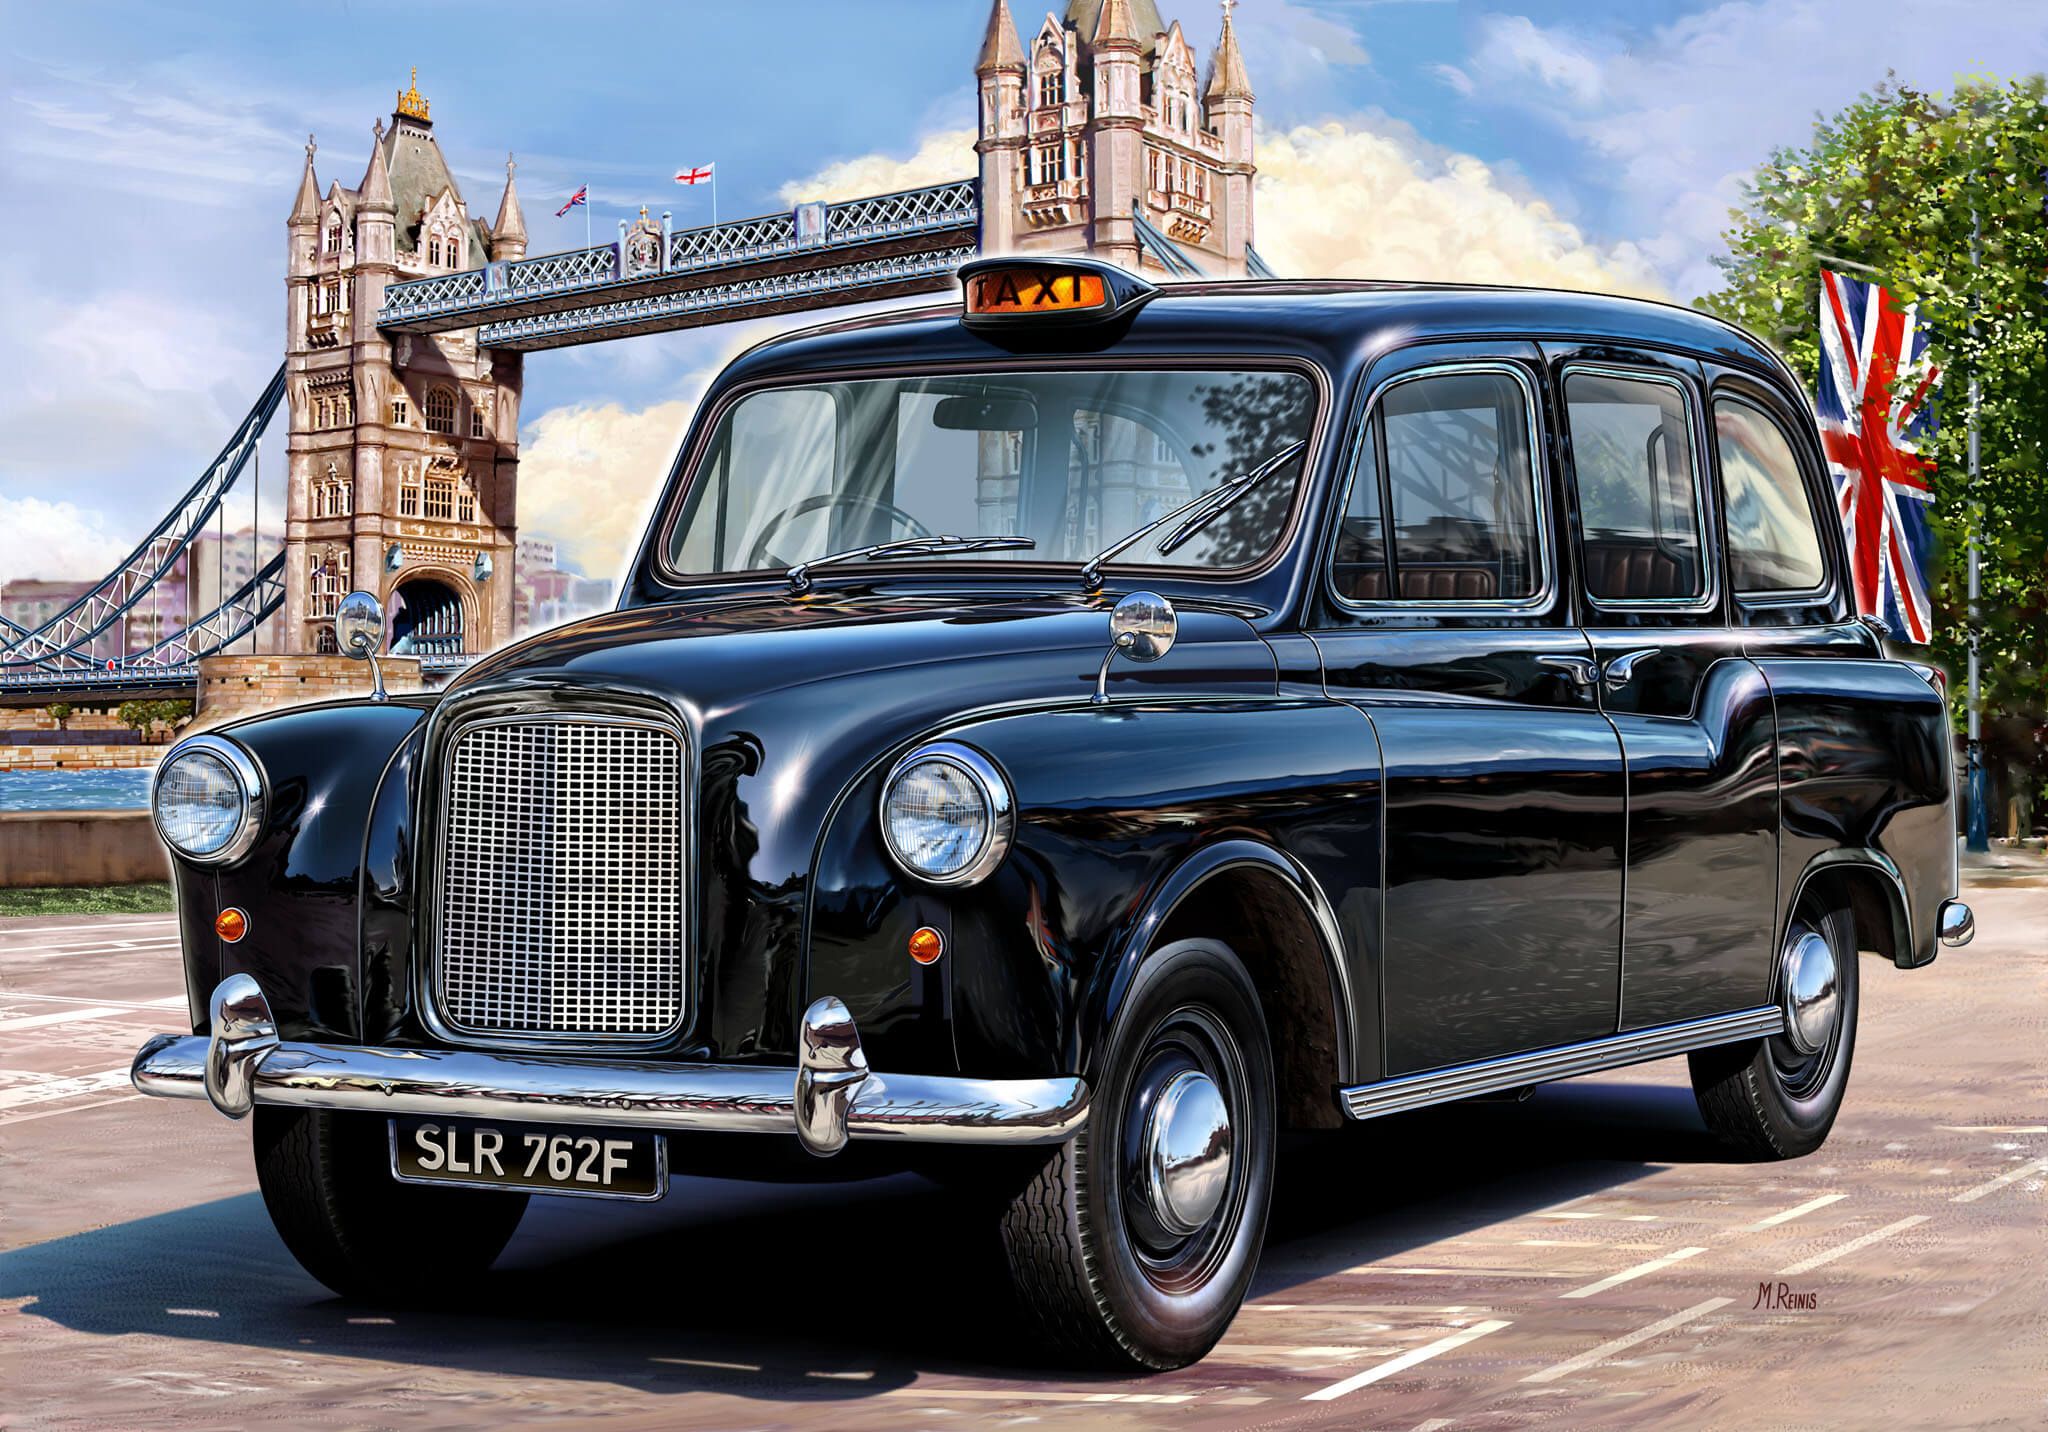 #8 London, UK | Cities With The Highest Airport Taxi Fares | Image Source: gizzmoheaven.com